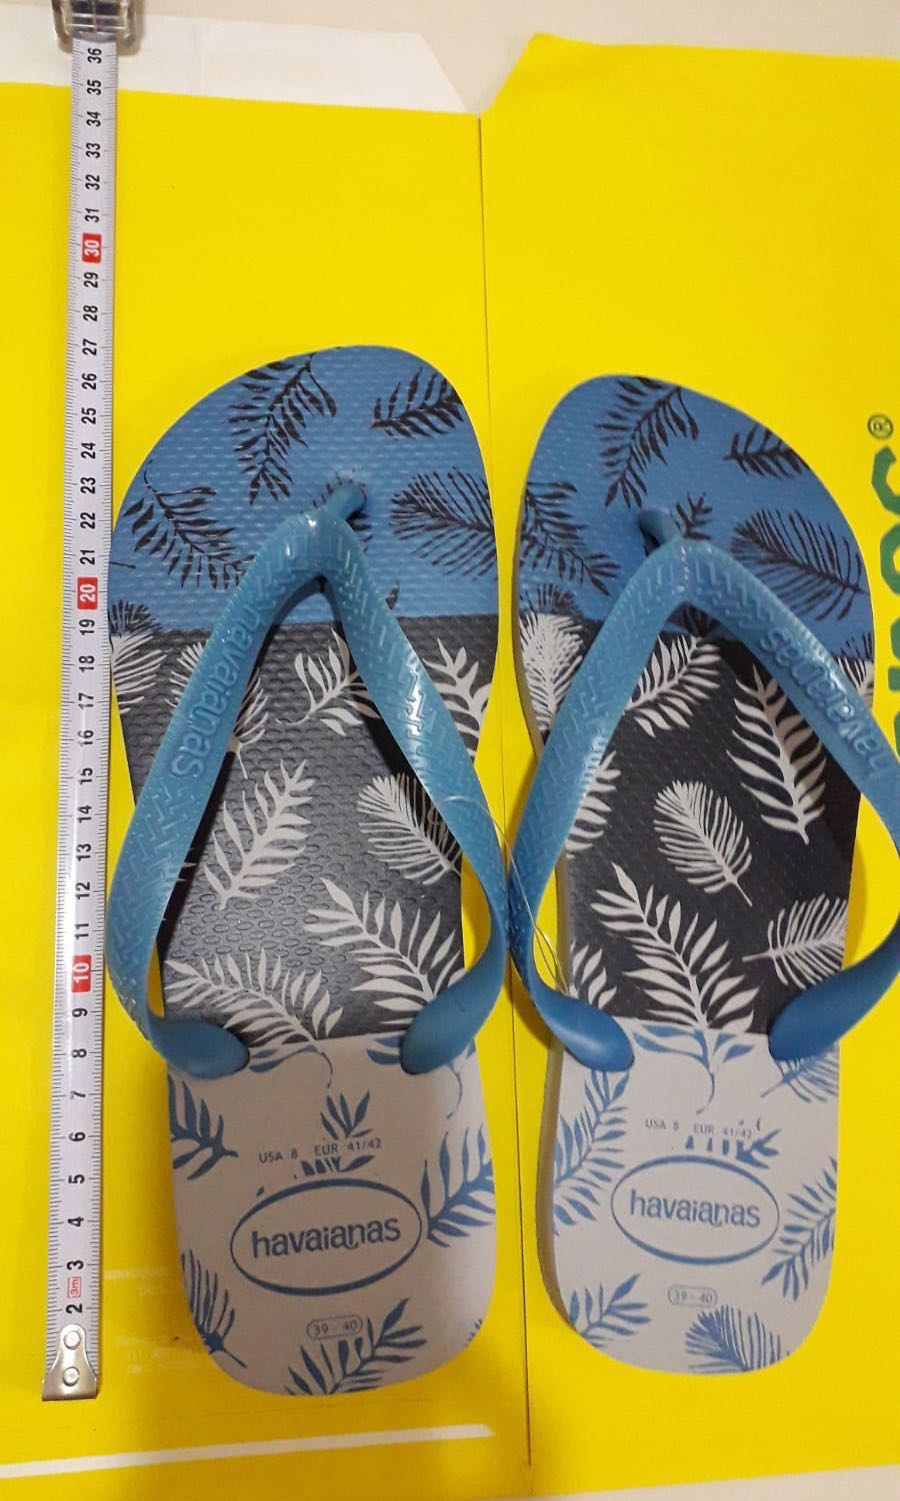 7352ce16f09532 Home · Men s Fashion · Footwear · Slippers   Sandals. photo photo photo  photo